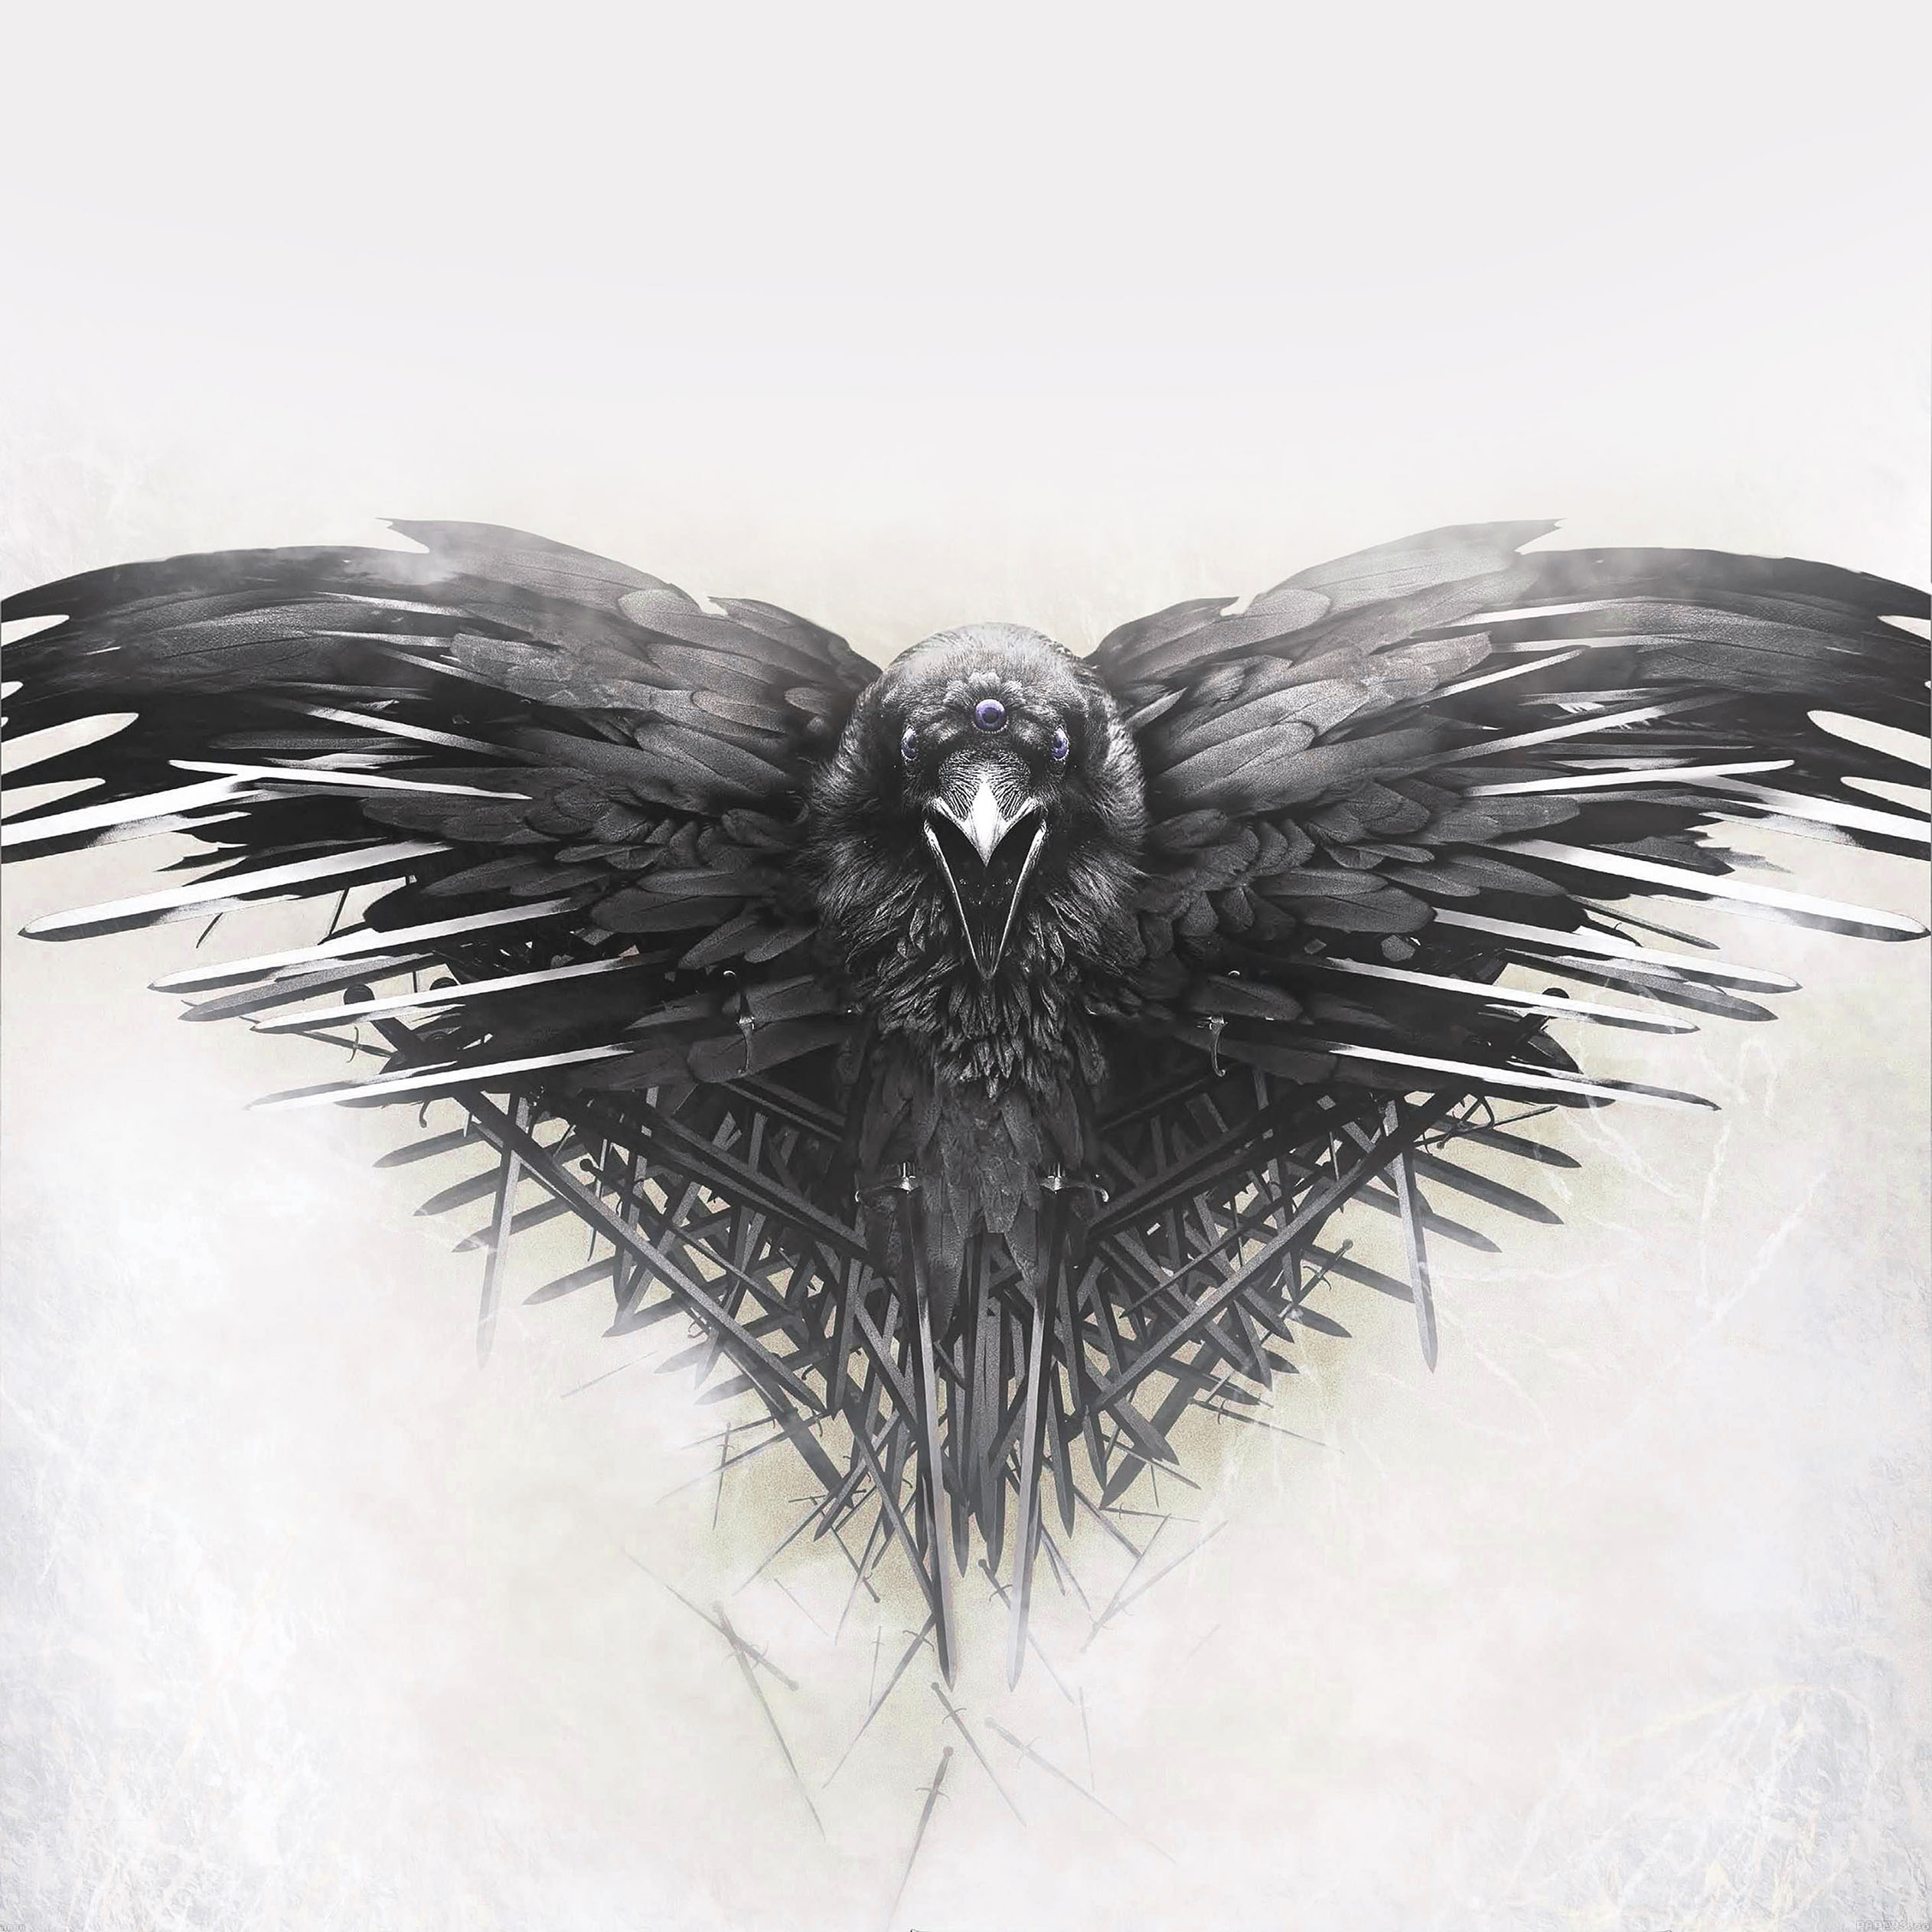 Game Of Thrones Throne Wallpaper: Game Of Thrones Wallpapers For IPhone